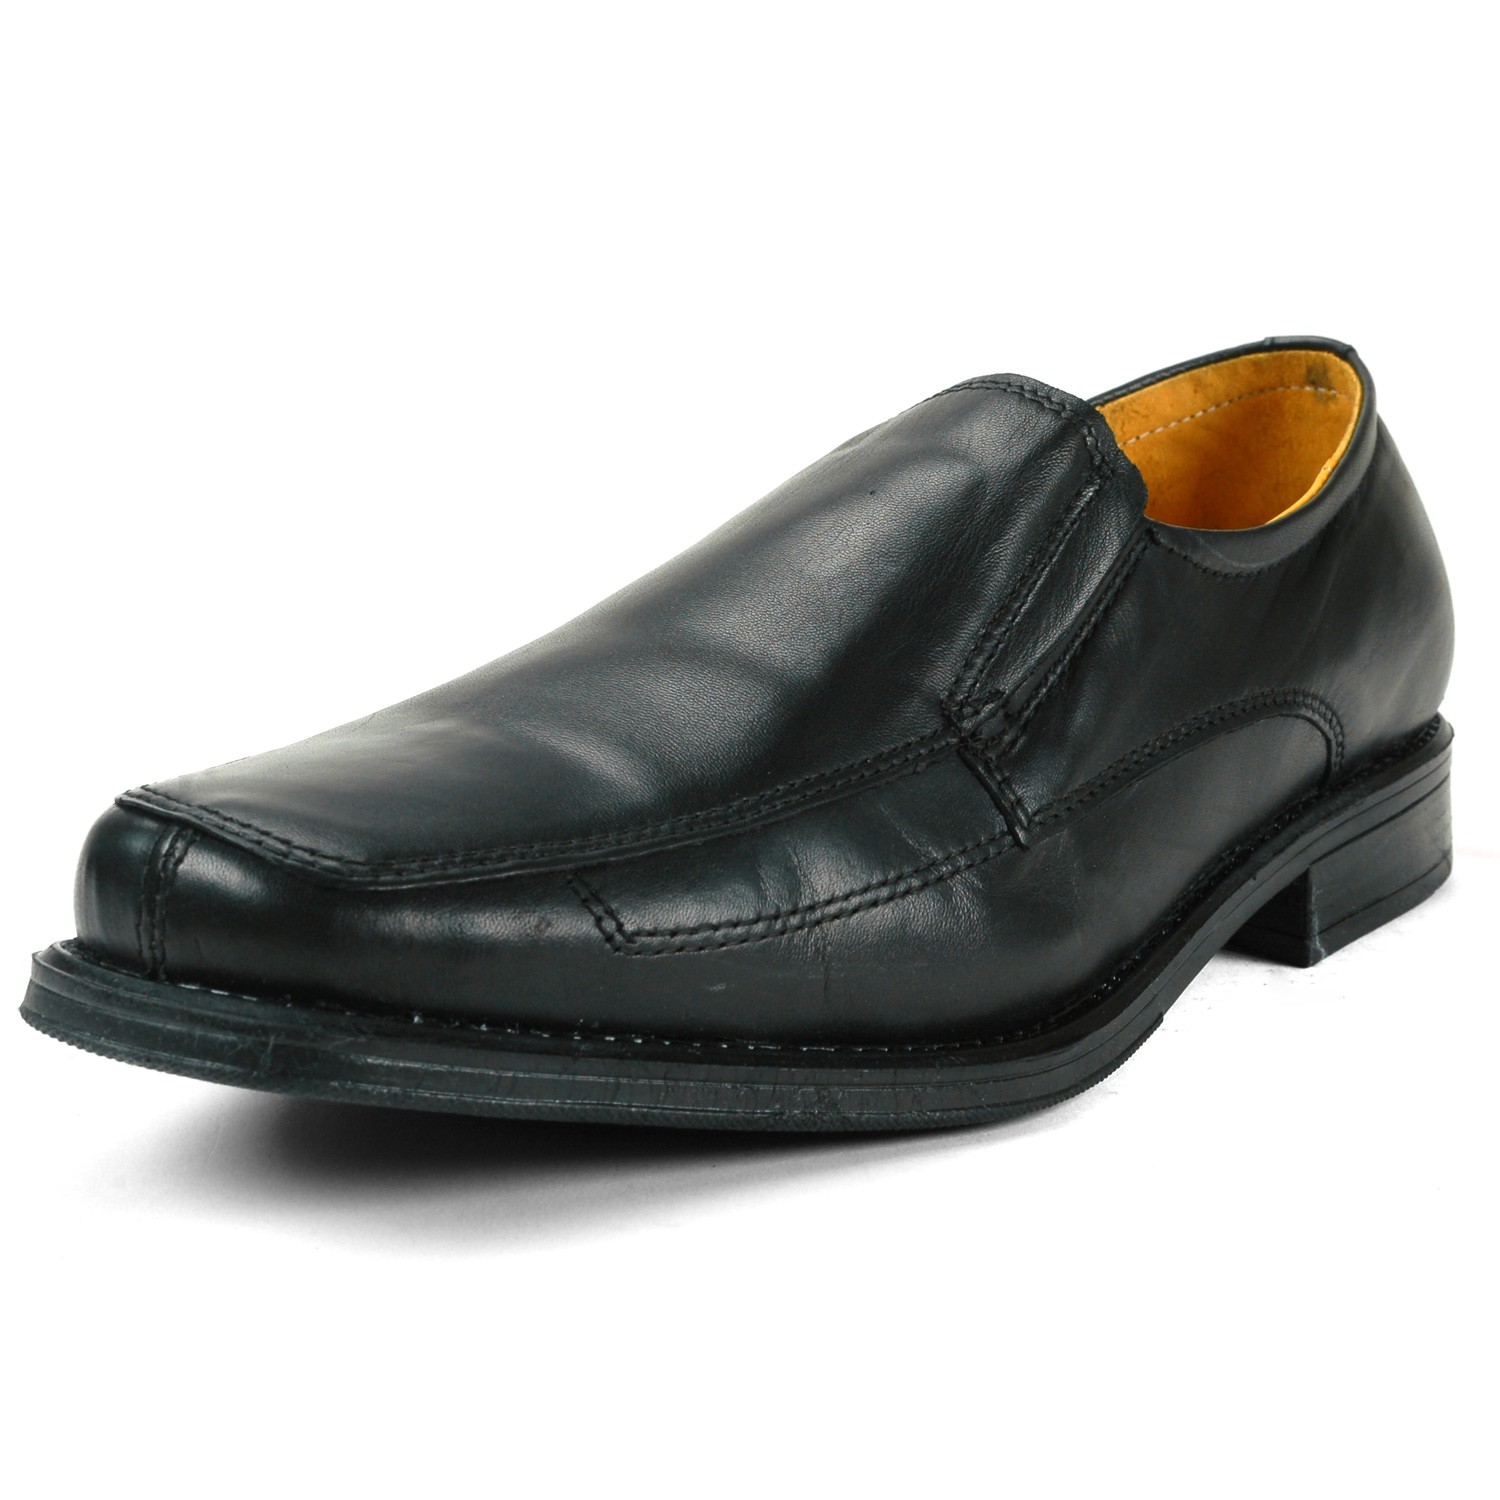 mens leather dress loafers slip on business suit casual